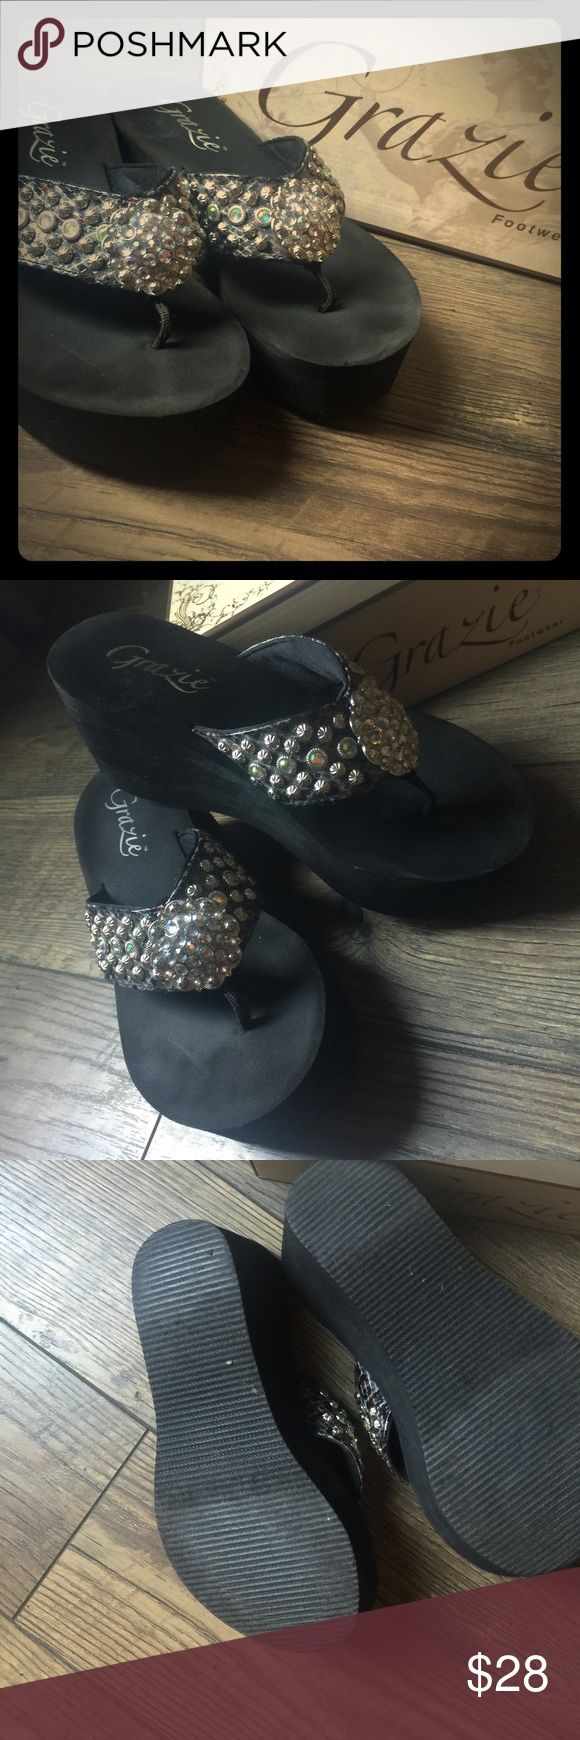 GRAZIE Bling Flip Flops EUC💞 worn only 5 or 6 times. Check out 3rd picture of the wear on the bottom of the show. Grazie Shoes Sandals